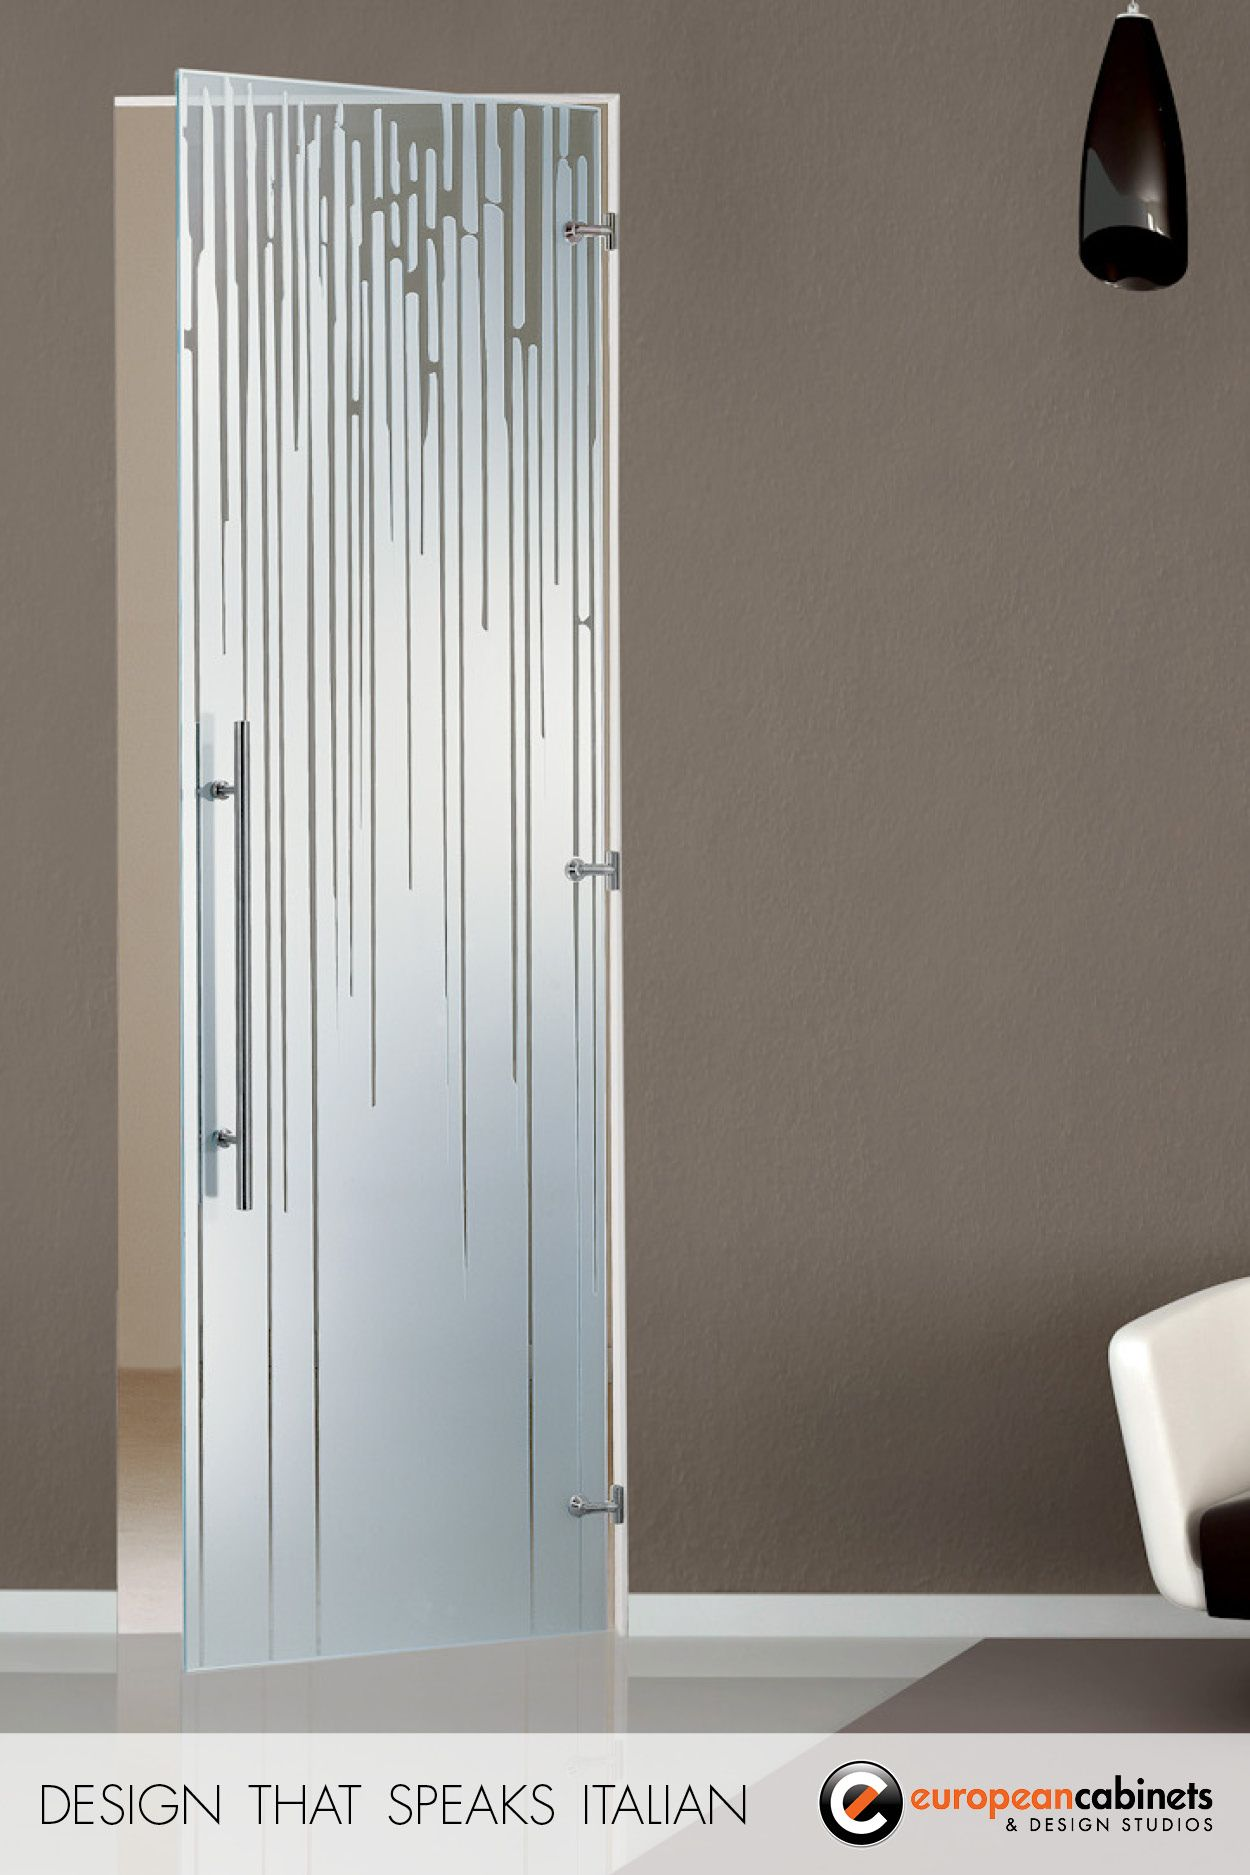 Artide is a beautiful glass door by casali perfect for home or office use